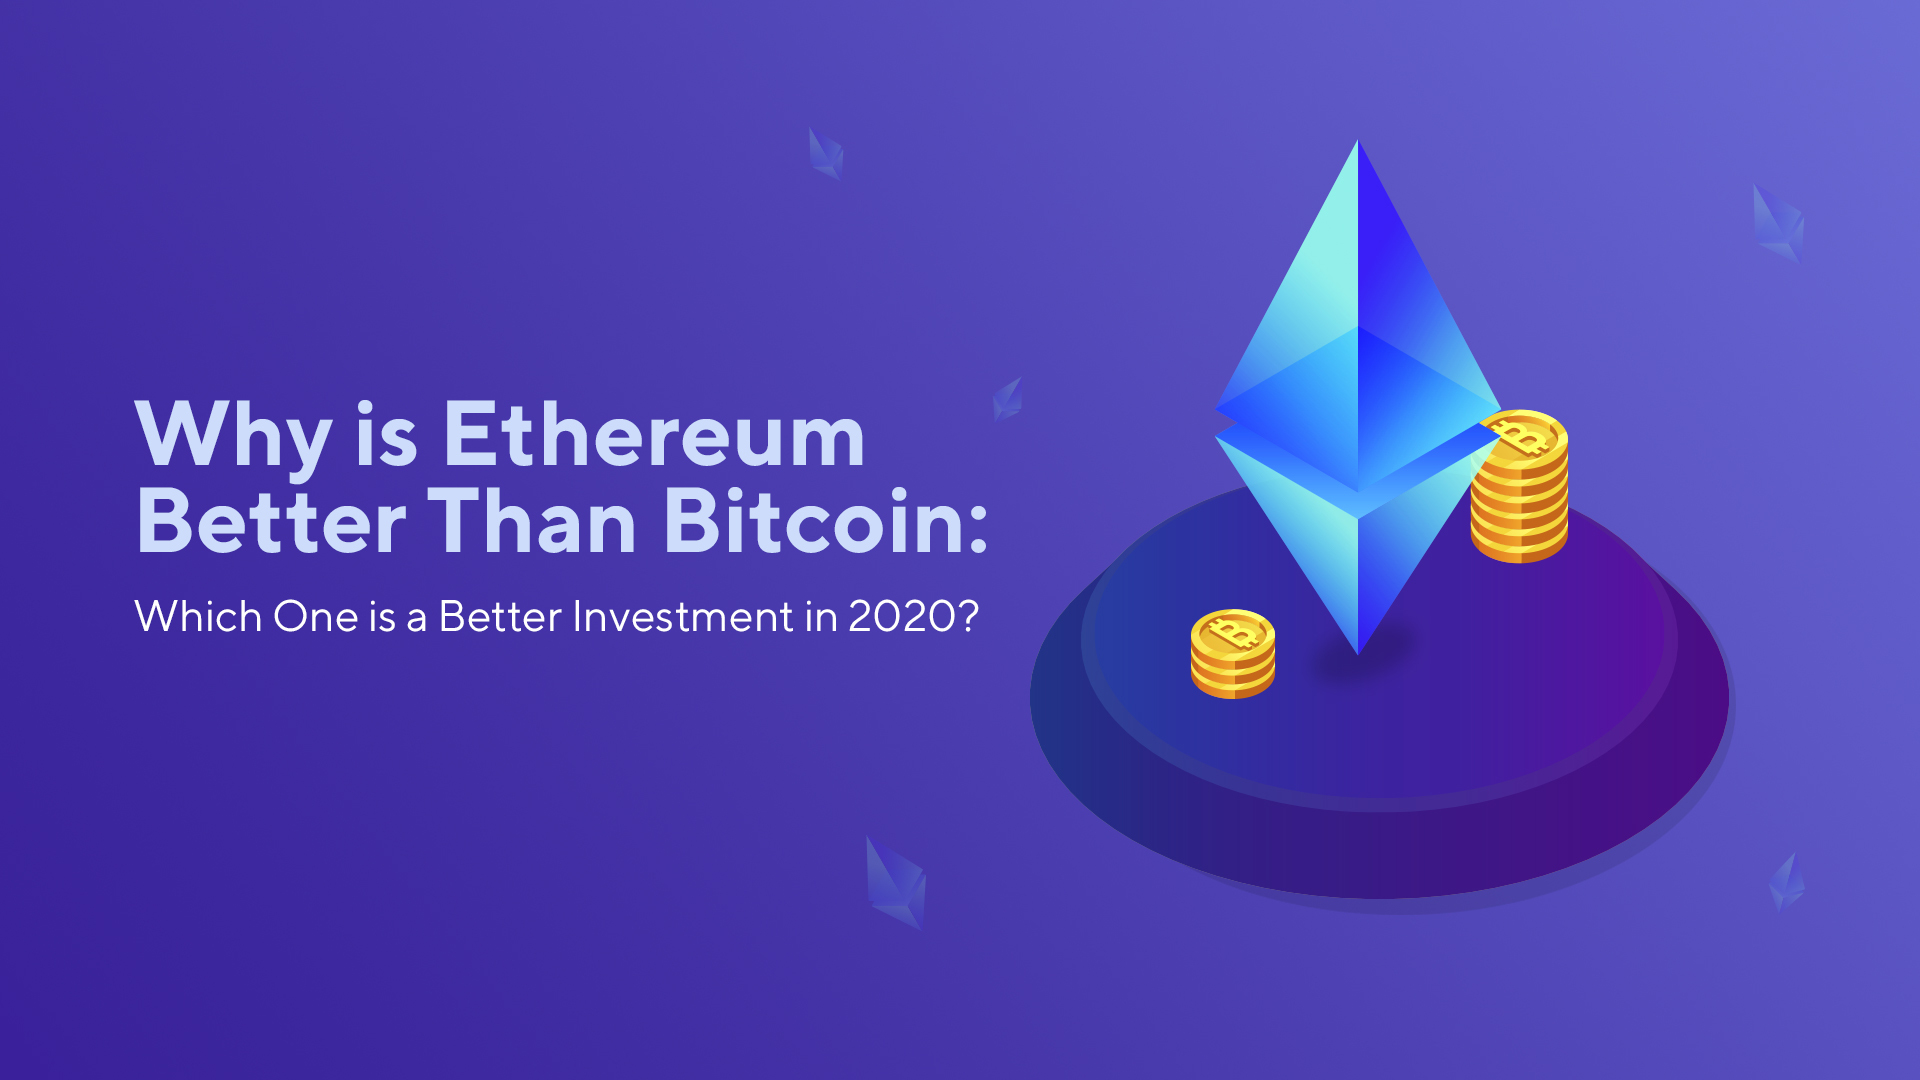 Why is Ethereum Better Than Bitcoin: Which One is a Better Investment in 2020?